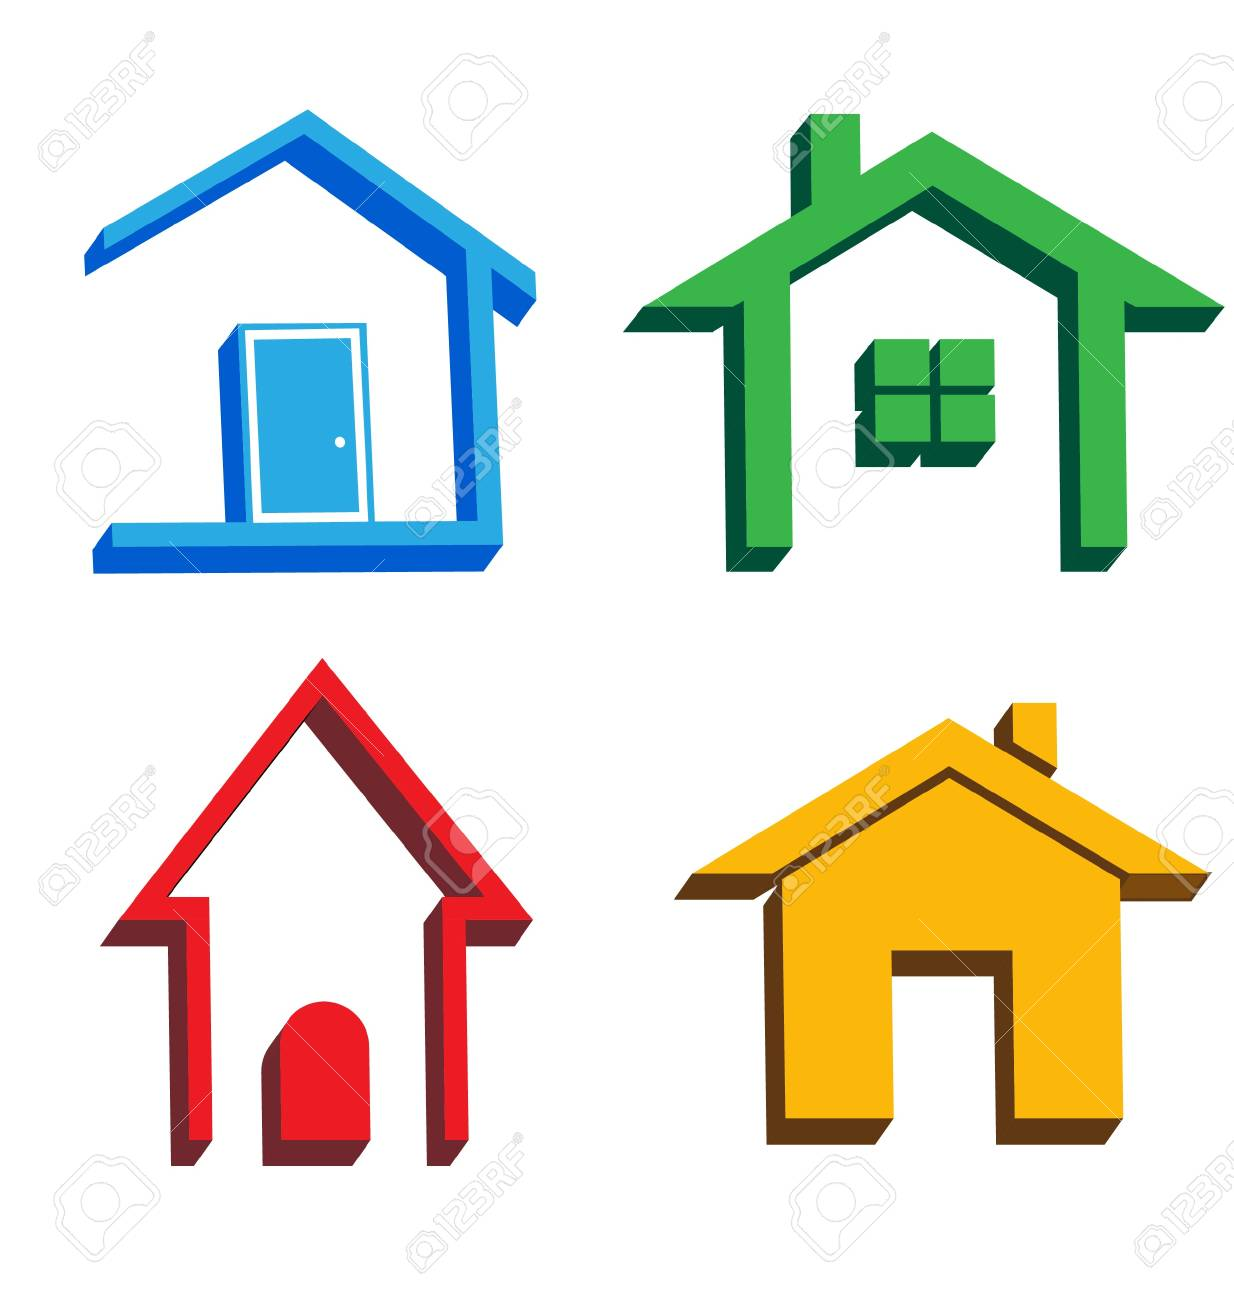 3D houses icons Stock Vector - 16052373